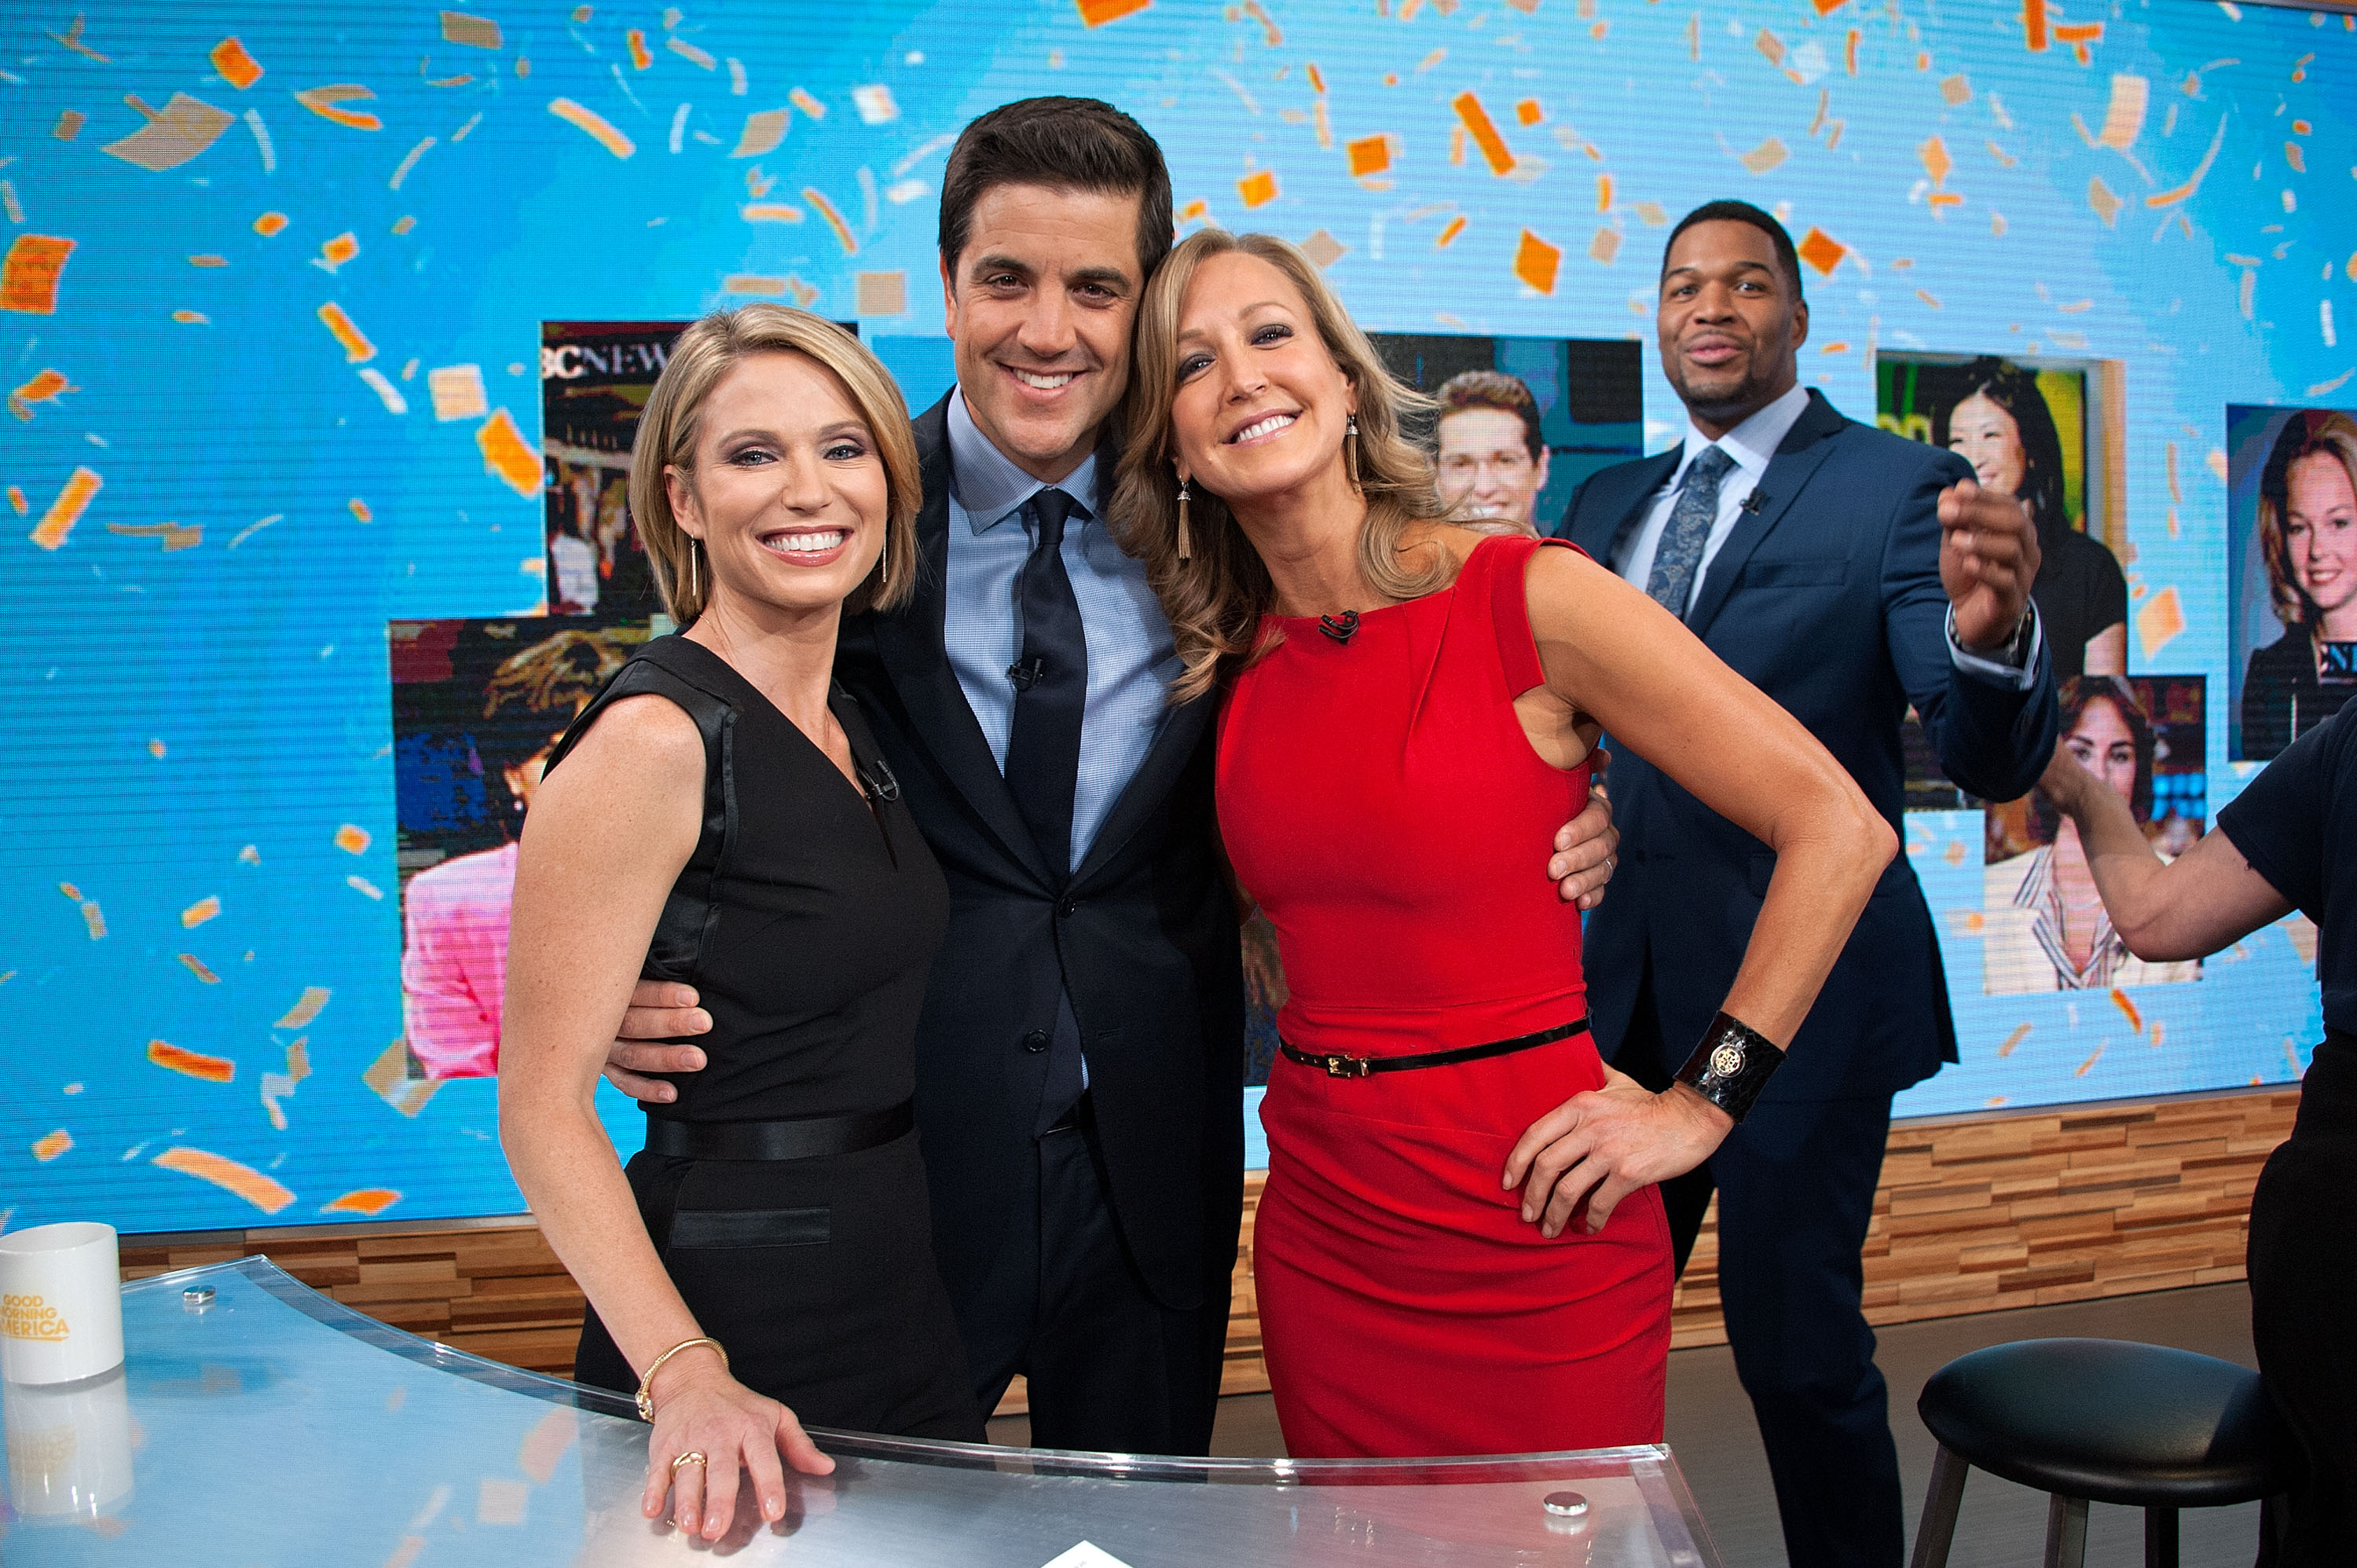 Amy Robach, Josh Elliott, Lara Spencer, Michael Strahan. Image Credit: Getty Images